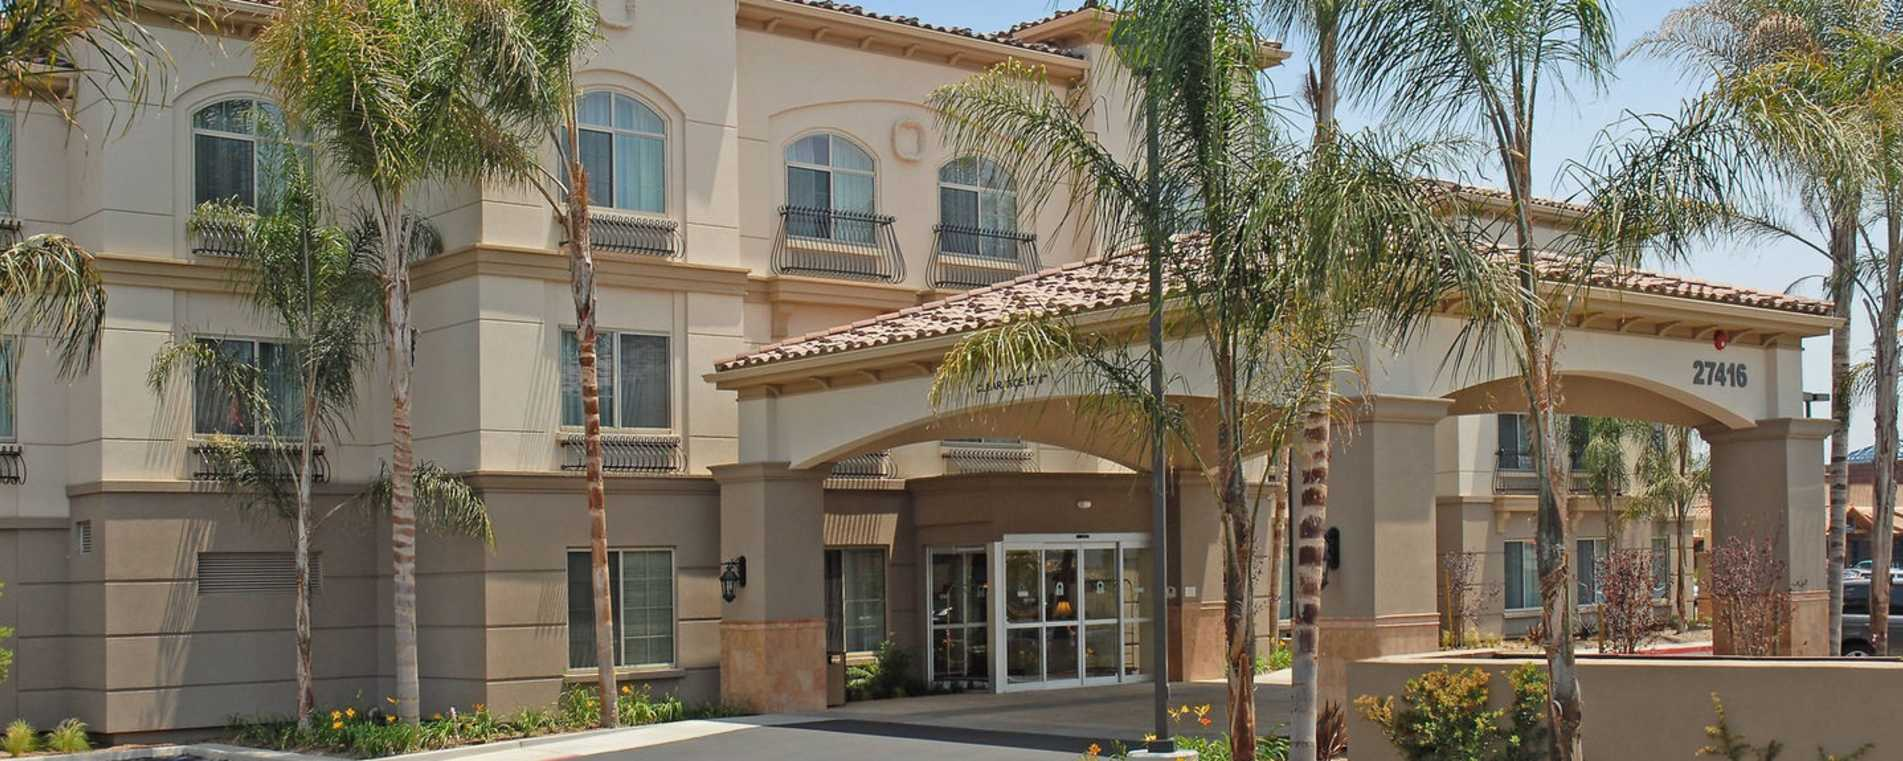 Fairfield Inn and Suites Temecula, CA